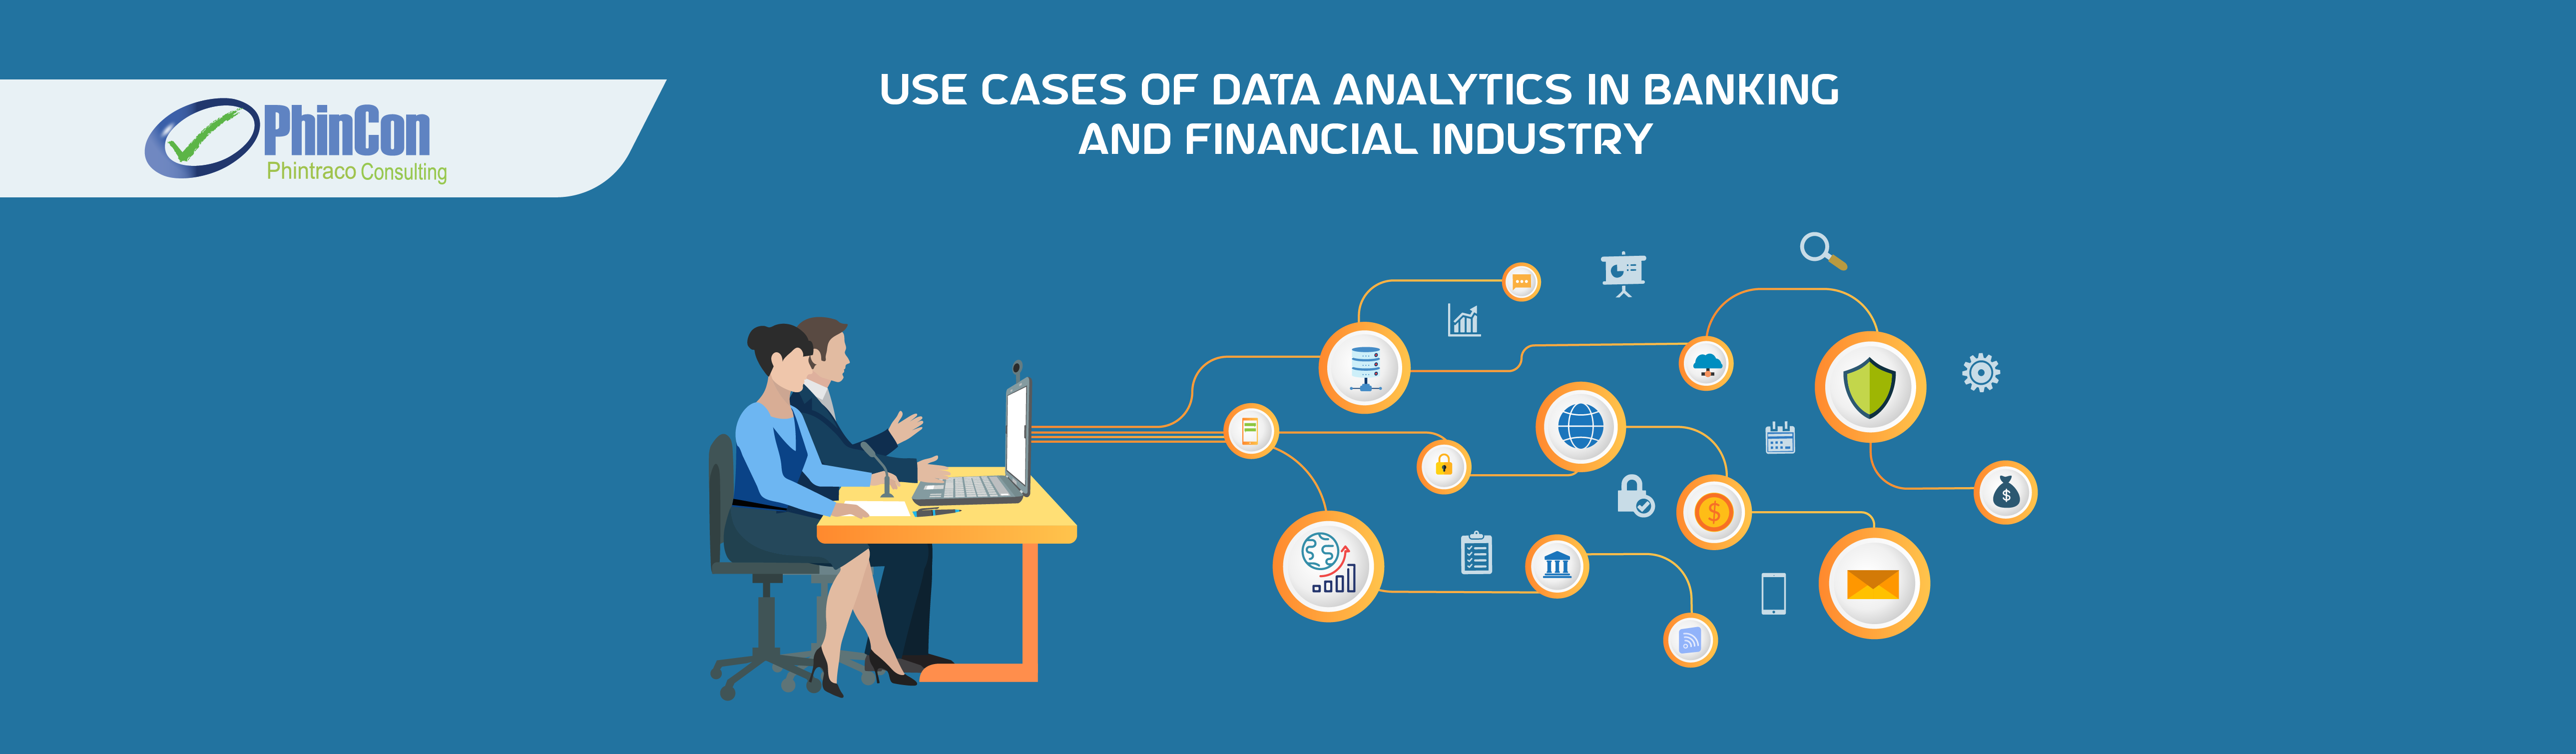 The Benefits of Data Analytics for Financial Services Industry